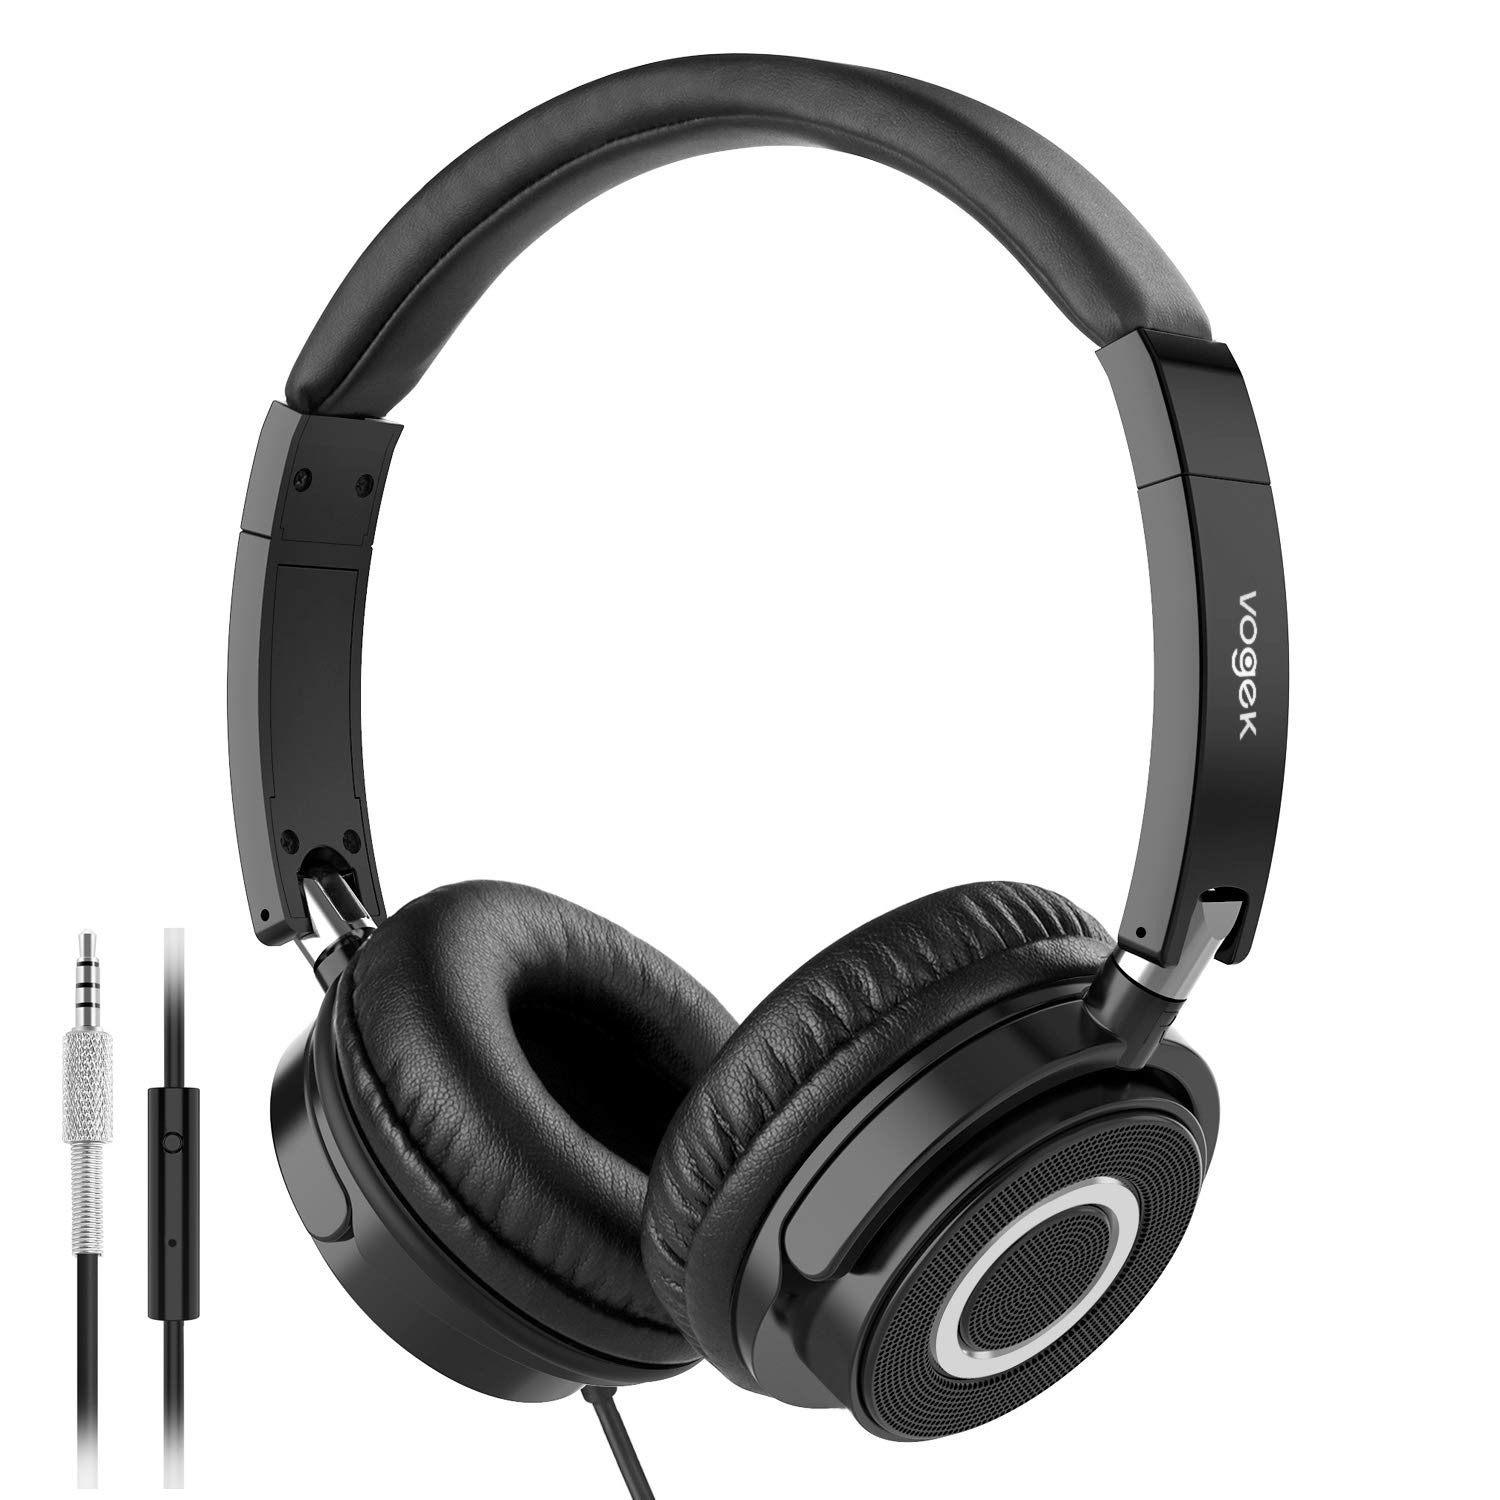 On Ear Headphones with Mic, Vogek Lightweight Portable Fold-Flat Stereo Bass Headphones with 1.5M Tangle Free Cord and Microphone-Black by VOGEK